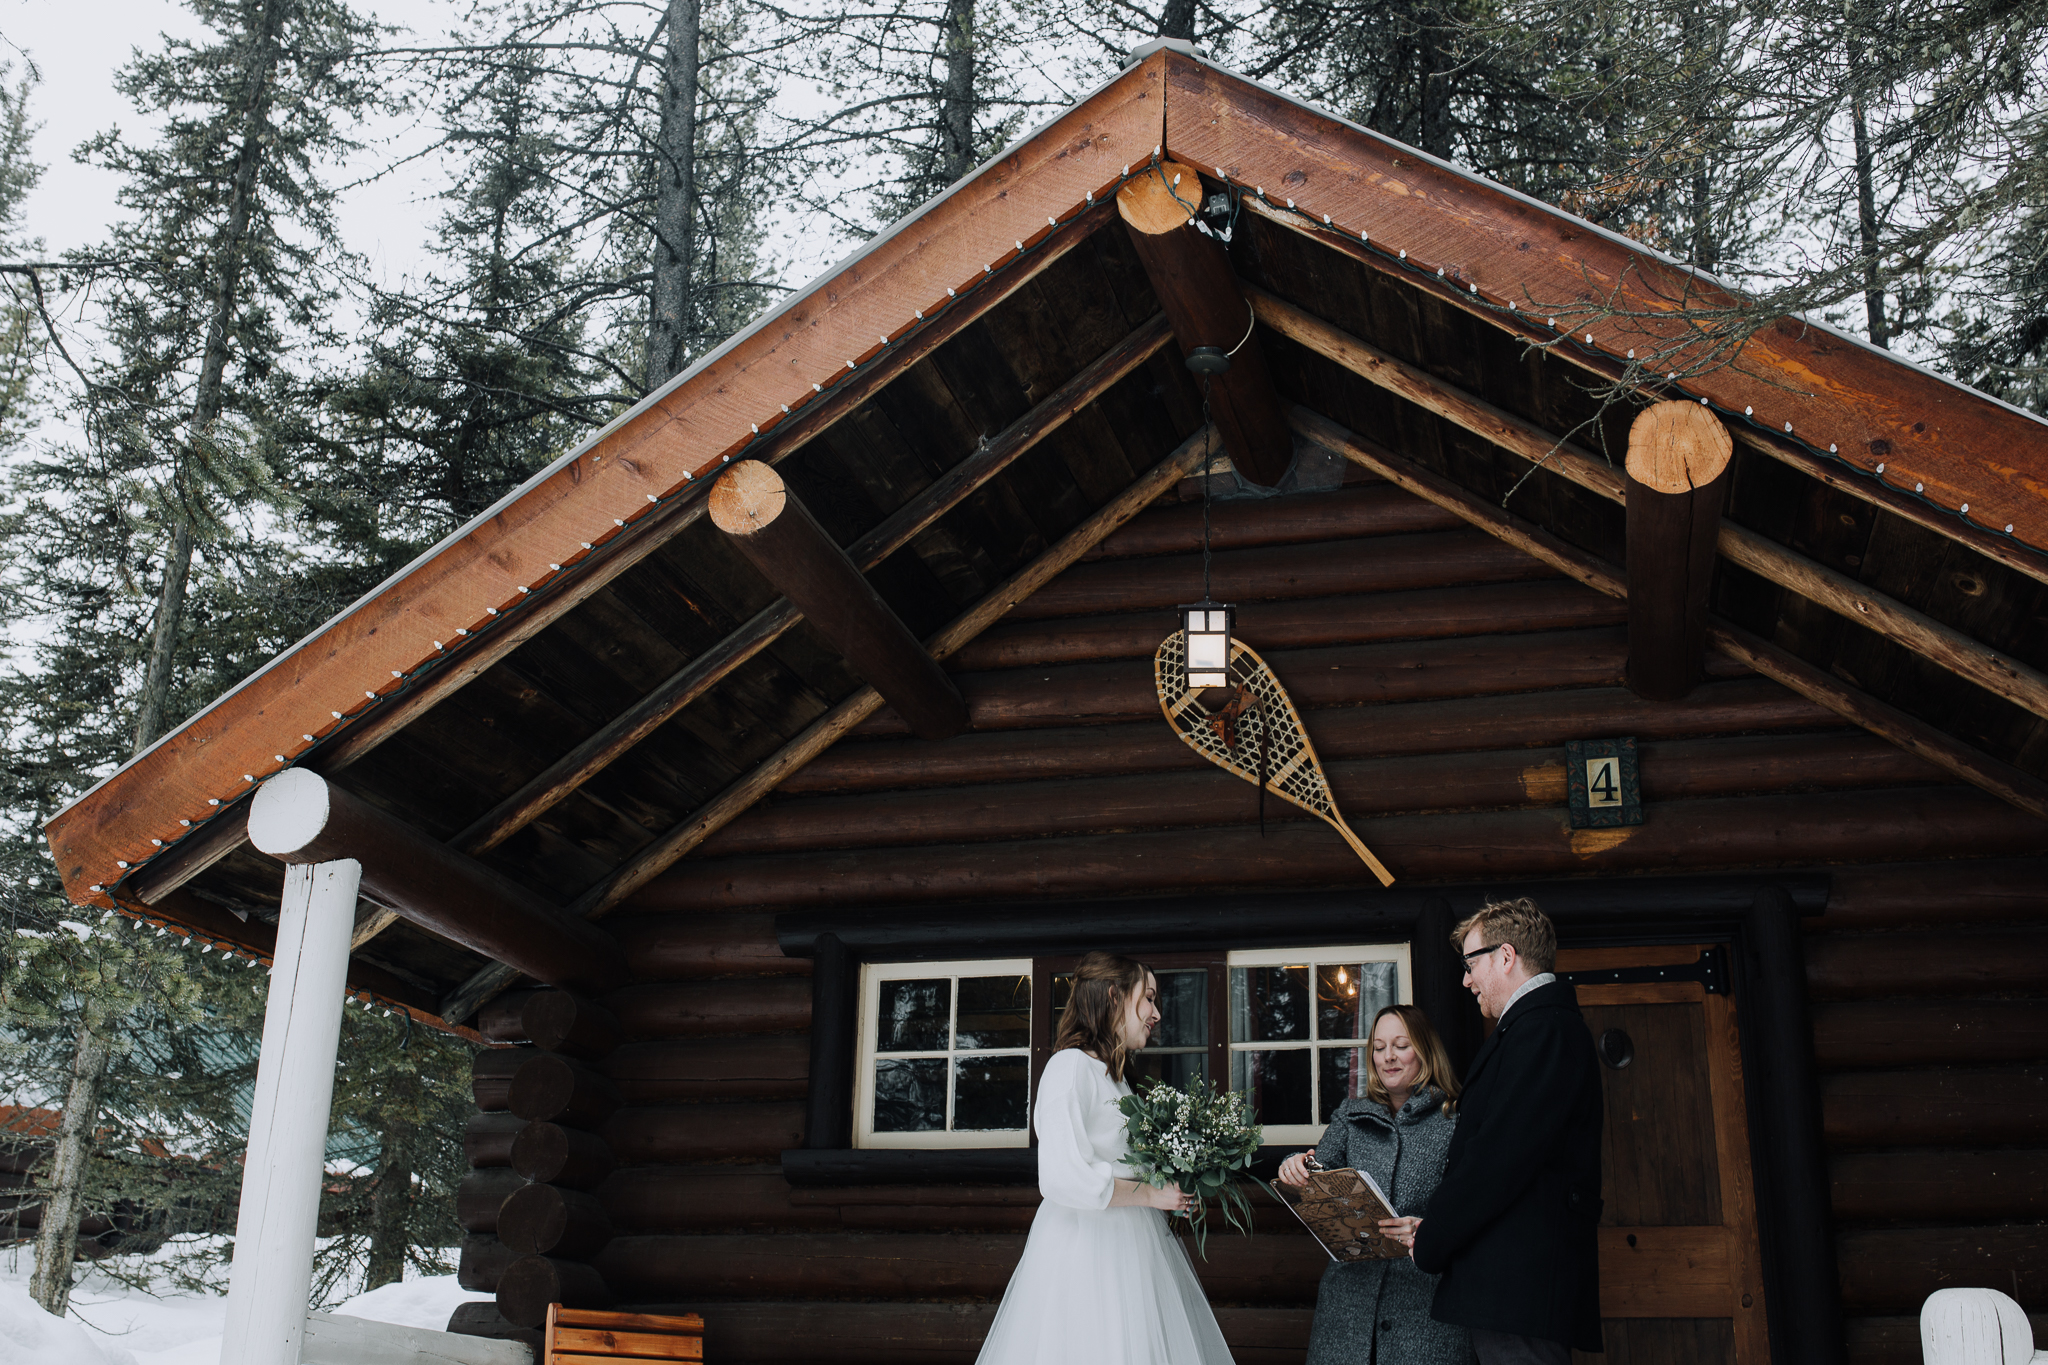 Bride and groom eloping on cute log cabin porch at Storm Mountain Lodge winter wedding